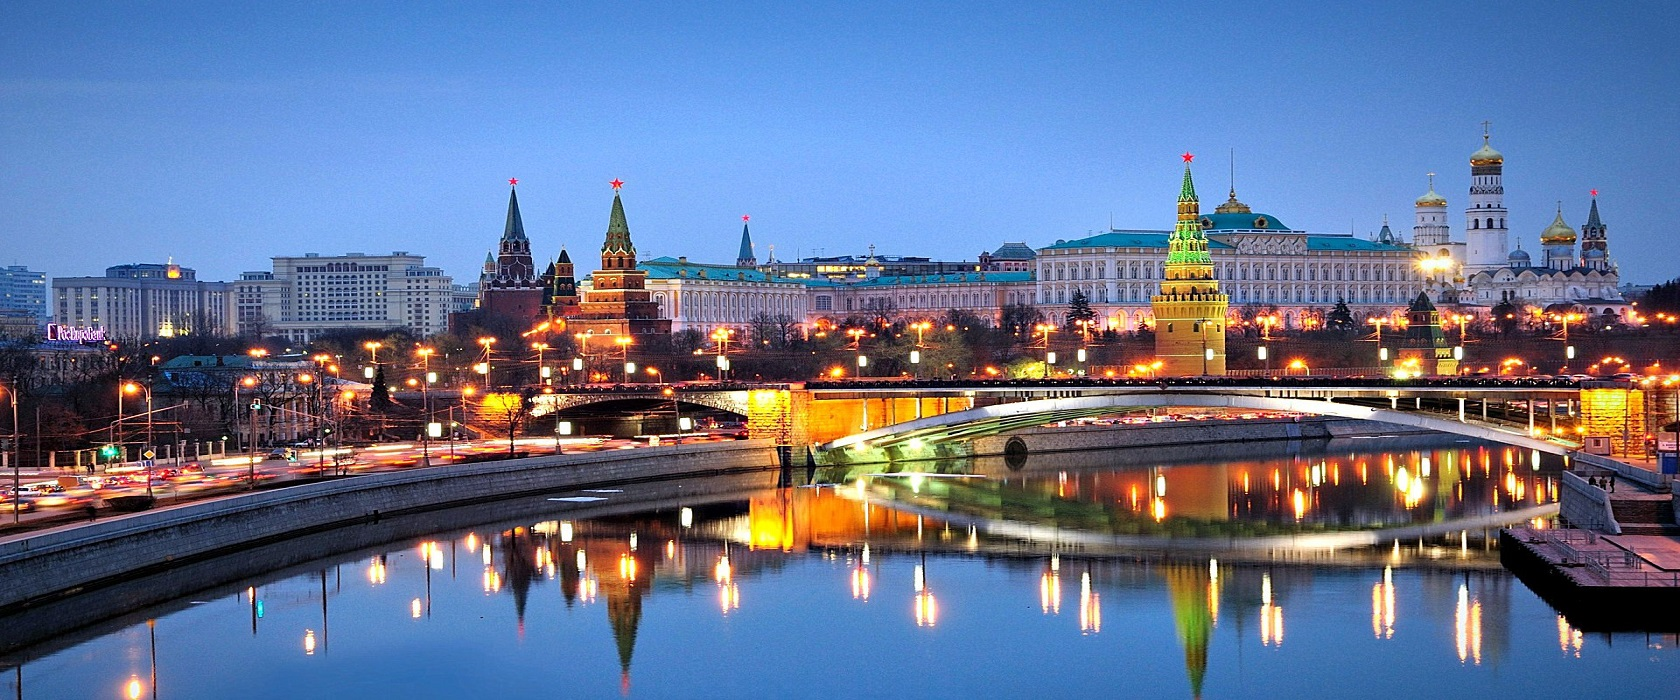 Cities_Moscow_is_the_capital_of_the_Russian_Federation_094292_